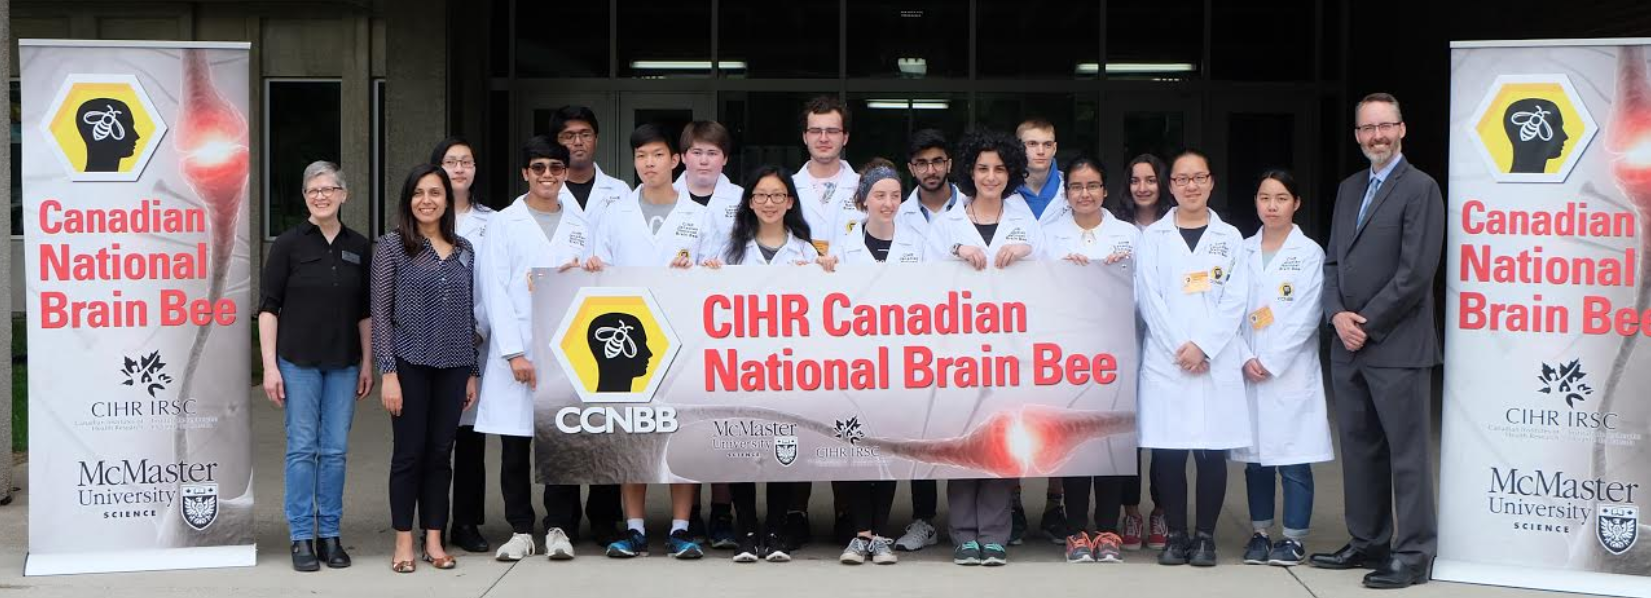 Canadian National Brain Bee